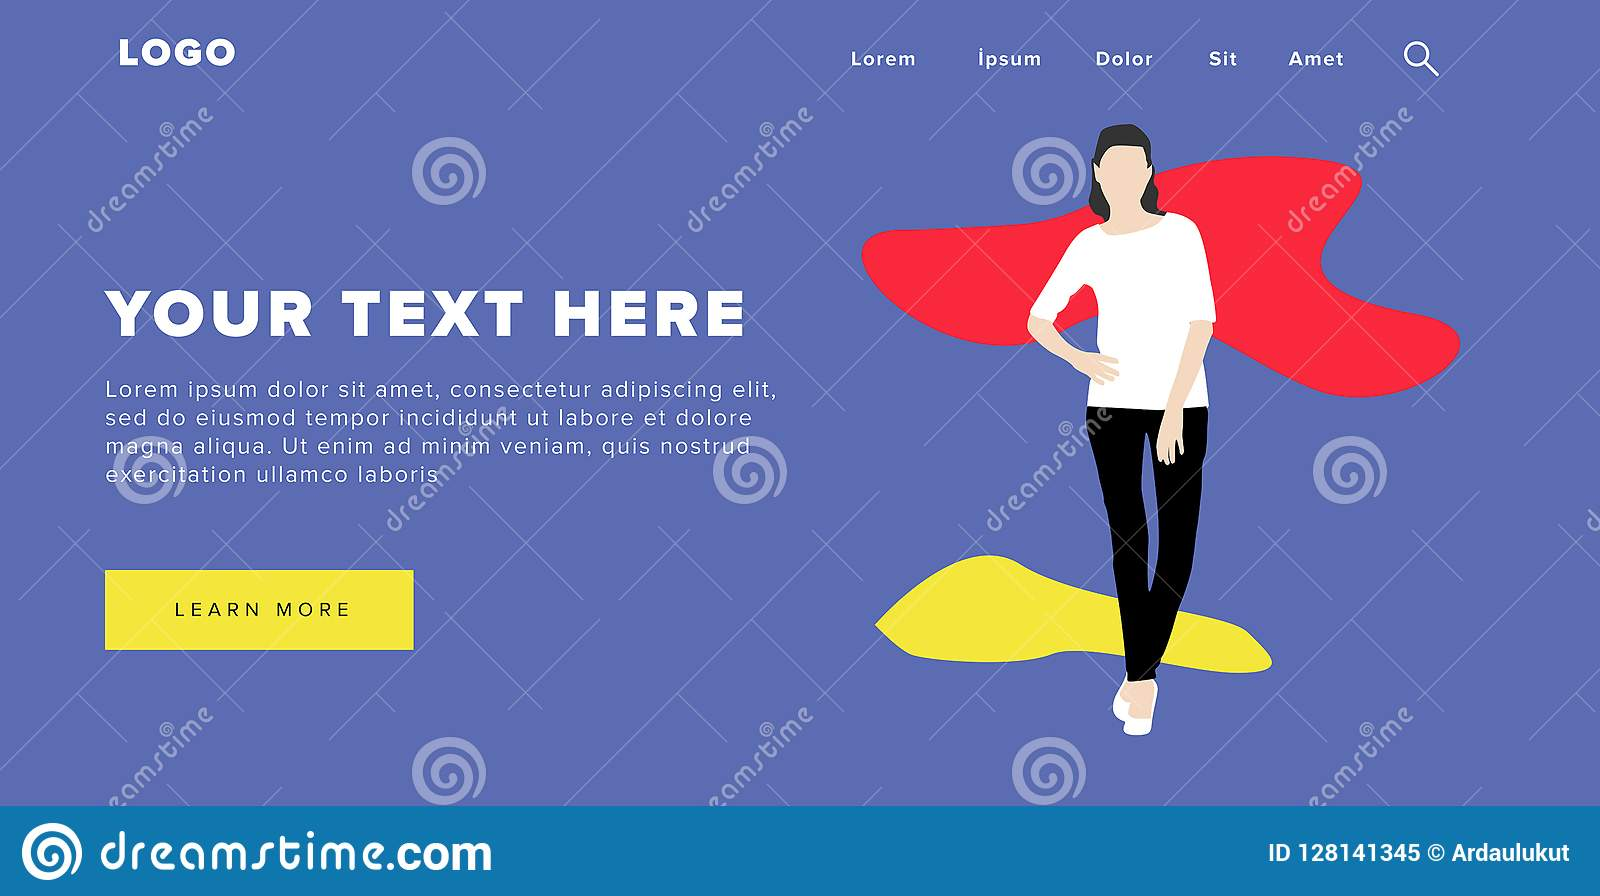 Flat Design Modern Colorful Web Banner and Slider Include Ui Elements With Standing Self-Confidence Woman Silhouette Landing Page